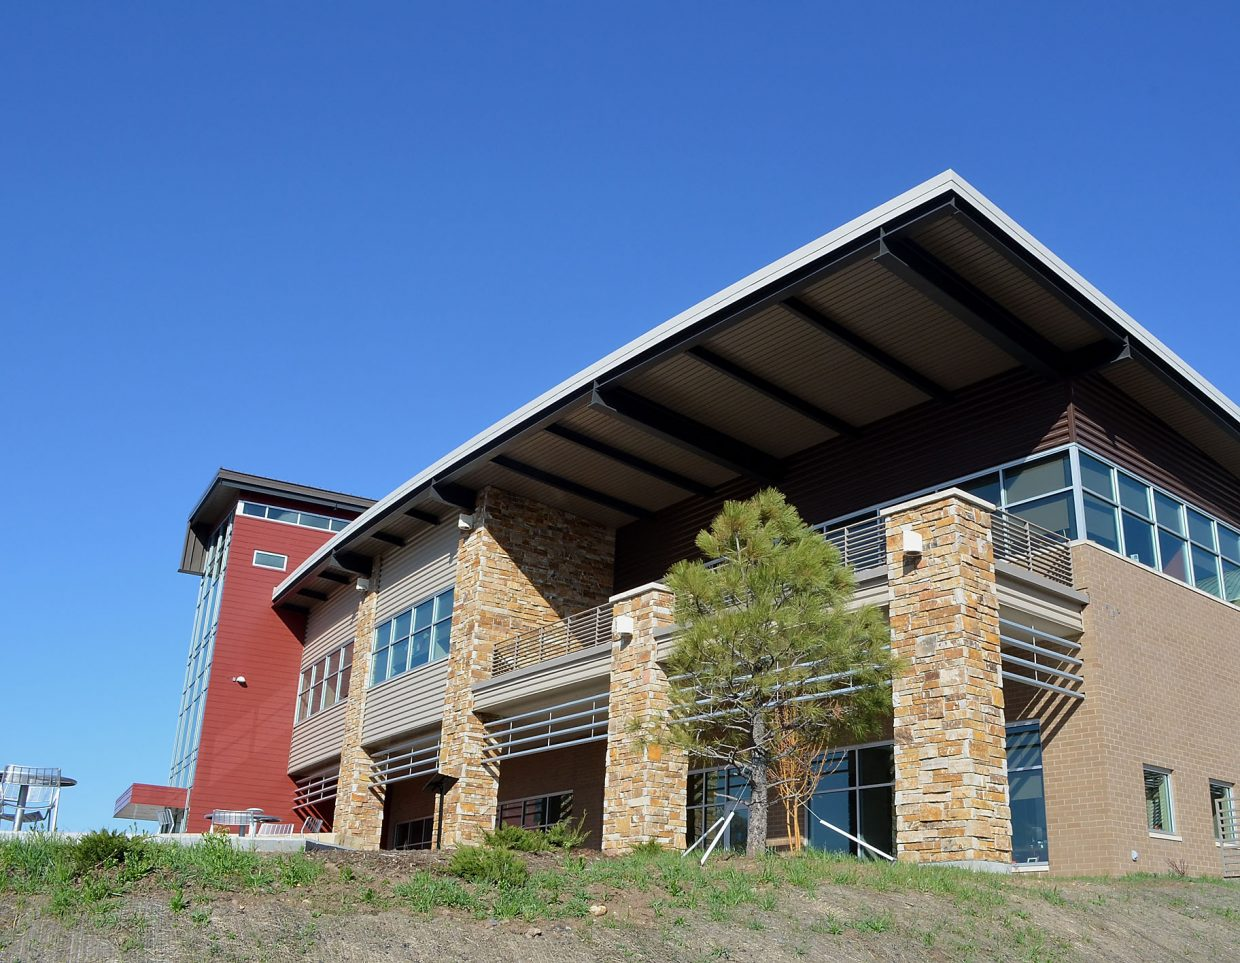 Scott Ford and Jackie Kuusinen helped about 15 businesspeople refine their sense of their target market at the Yampa Valley Entrepreneurship Center on the Alpine Campus of Colorado Mountain College this week.